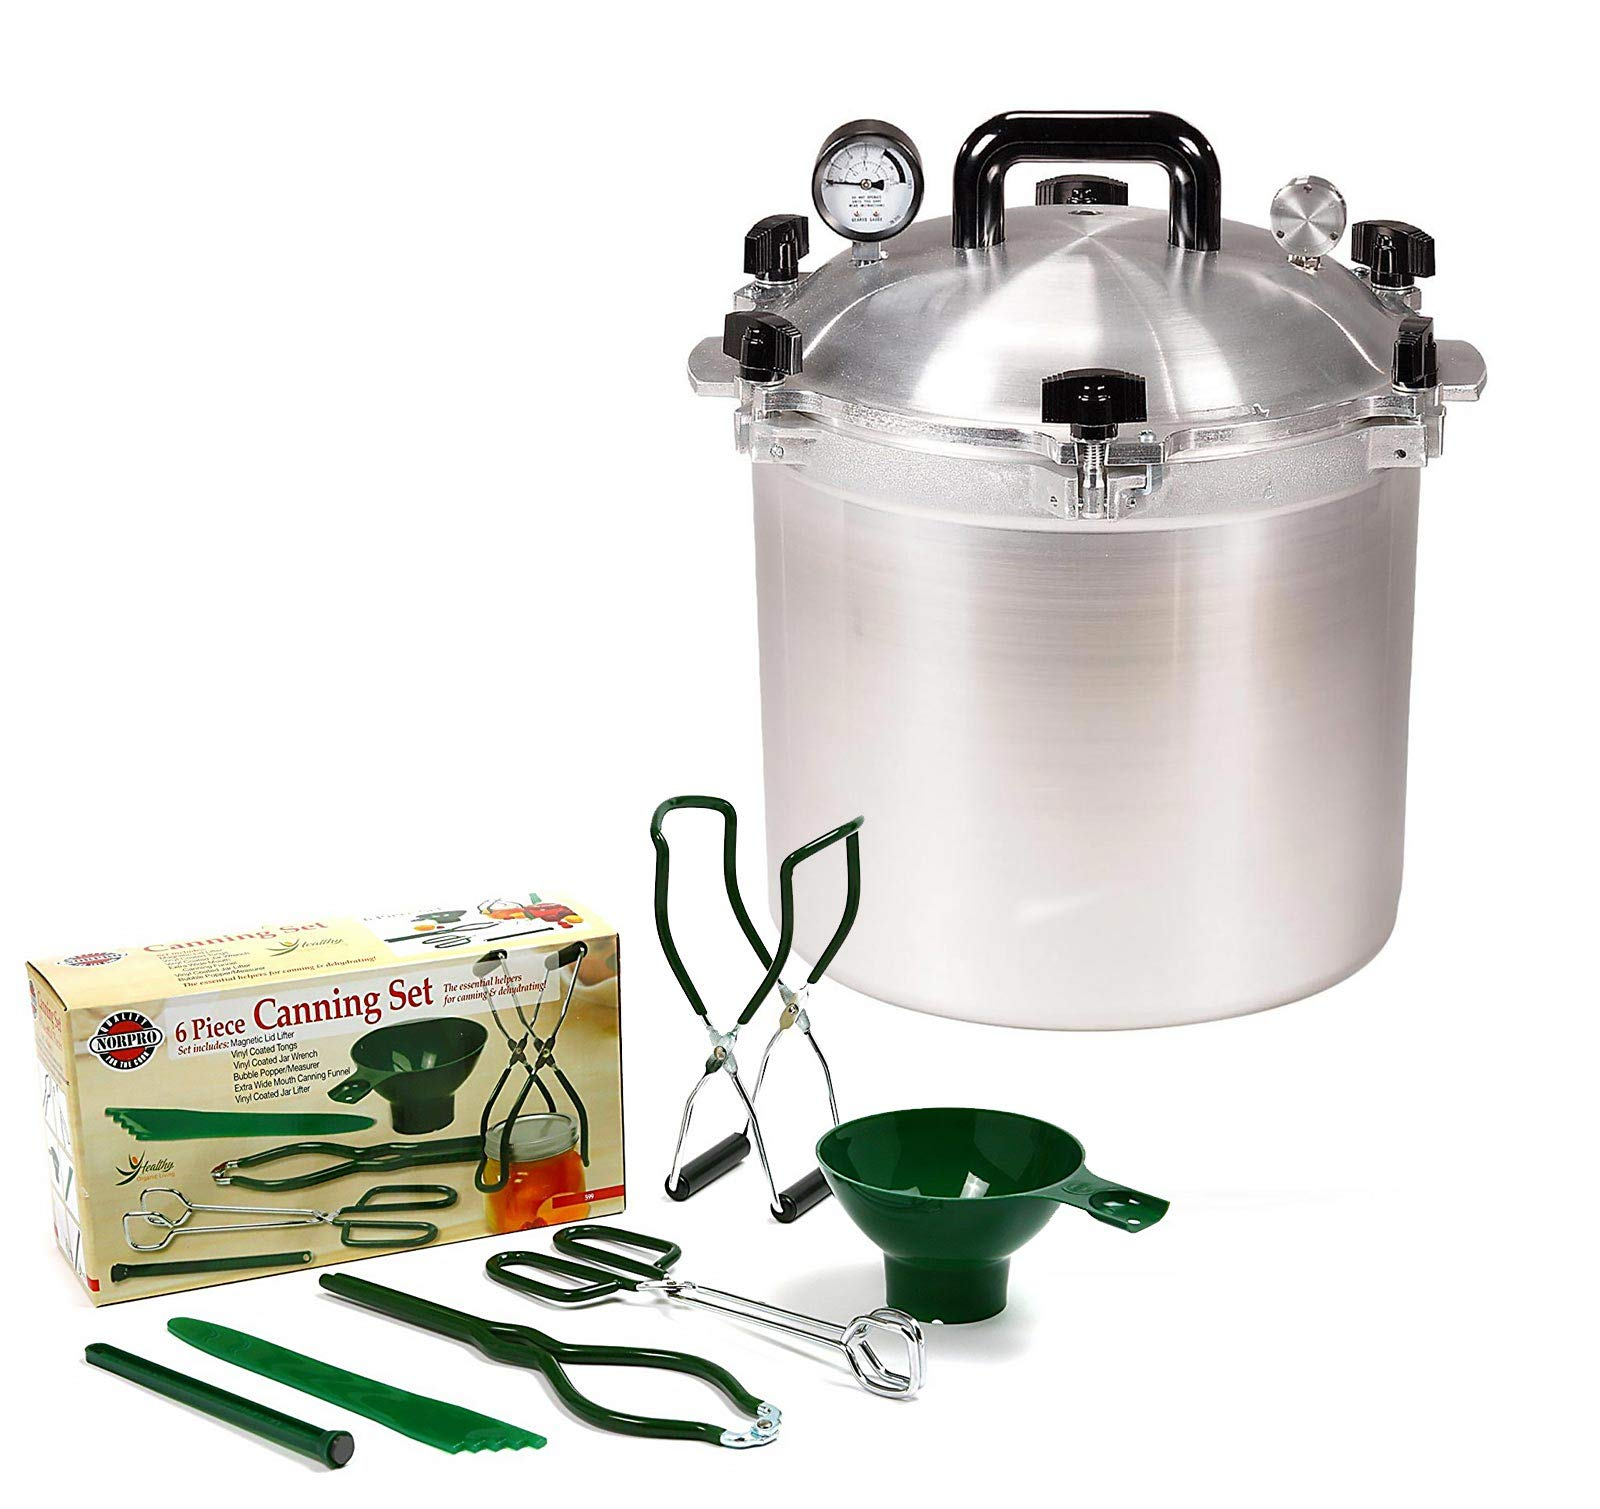 All American 21.5 QT Pressure Cooker Bundle with 2 Racks and Norpro Canning Essentials 6 Piece Box Set by All American